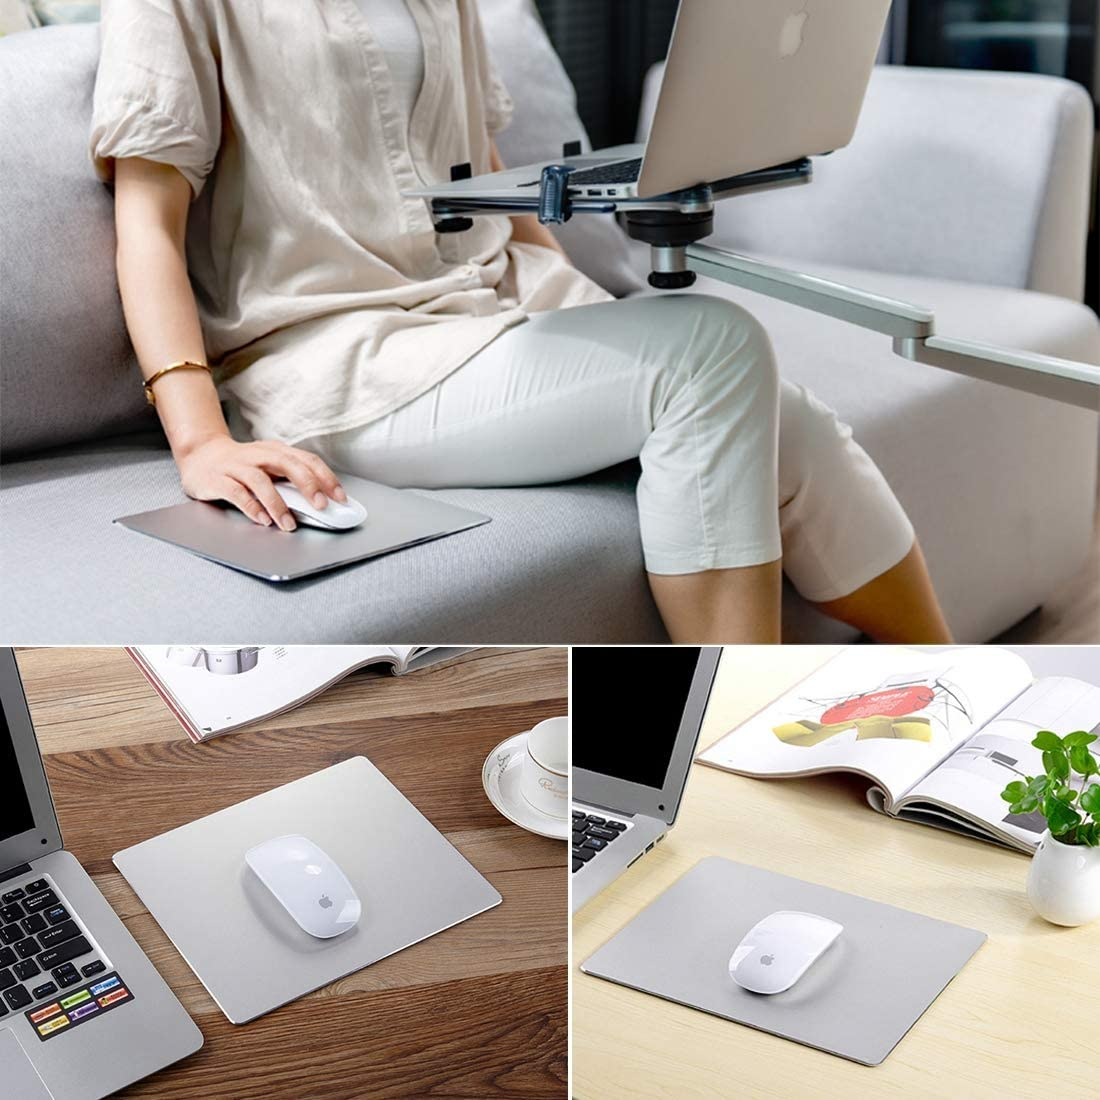 Wireless Mouse Keyboard Mouse Extended Large Slim Anti-Slip Aluminium Alloy Game and Office Keyboard Mouse Pad Mat New Bluetooth Color : Silver Black Size: 240 x 170 x 4 mm